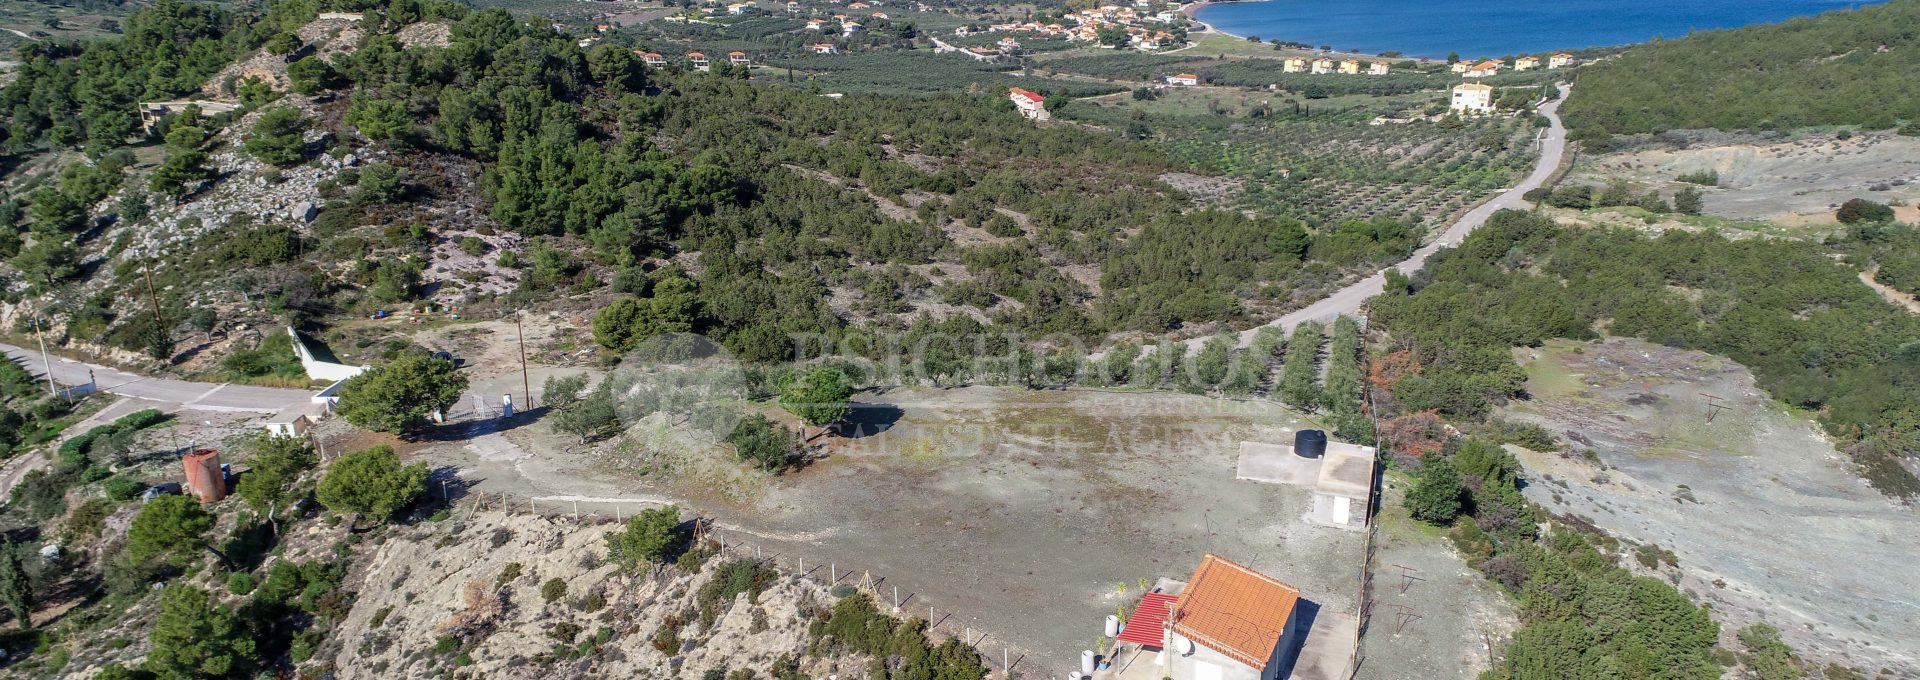 for_sale_plot_4000_square_meters_with_house_sea_view_ermioni_greece (5)